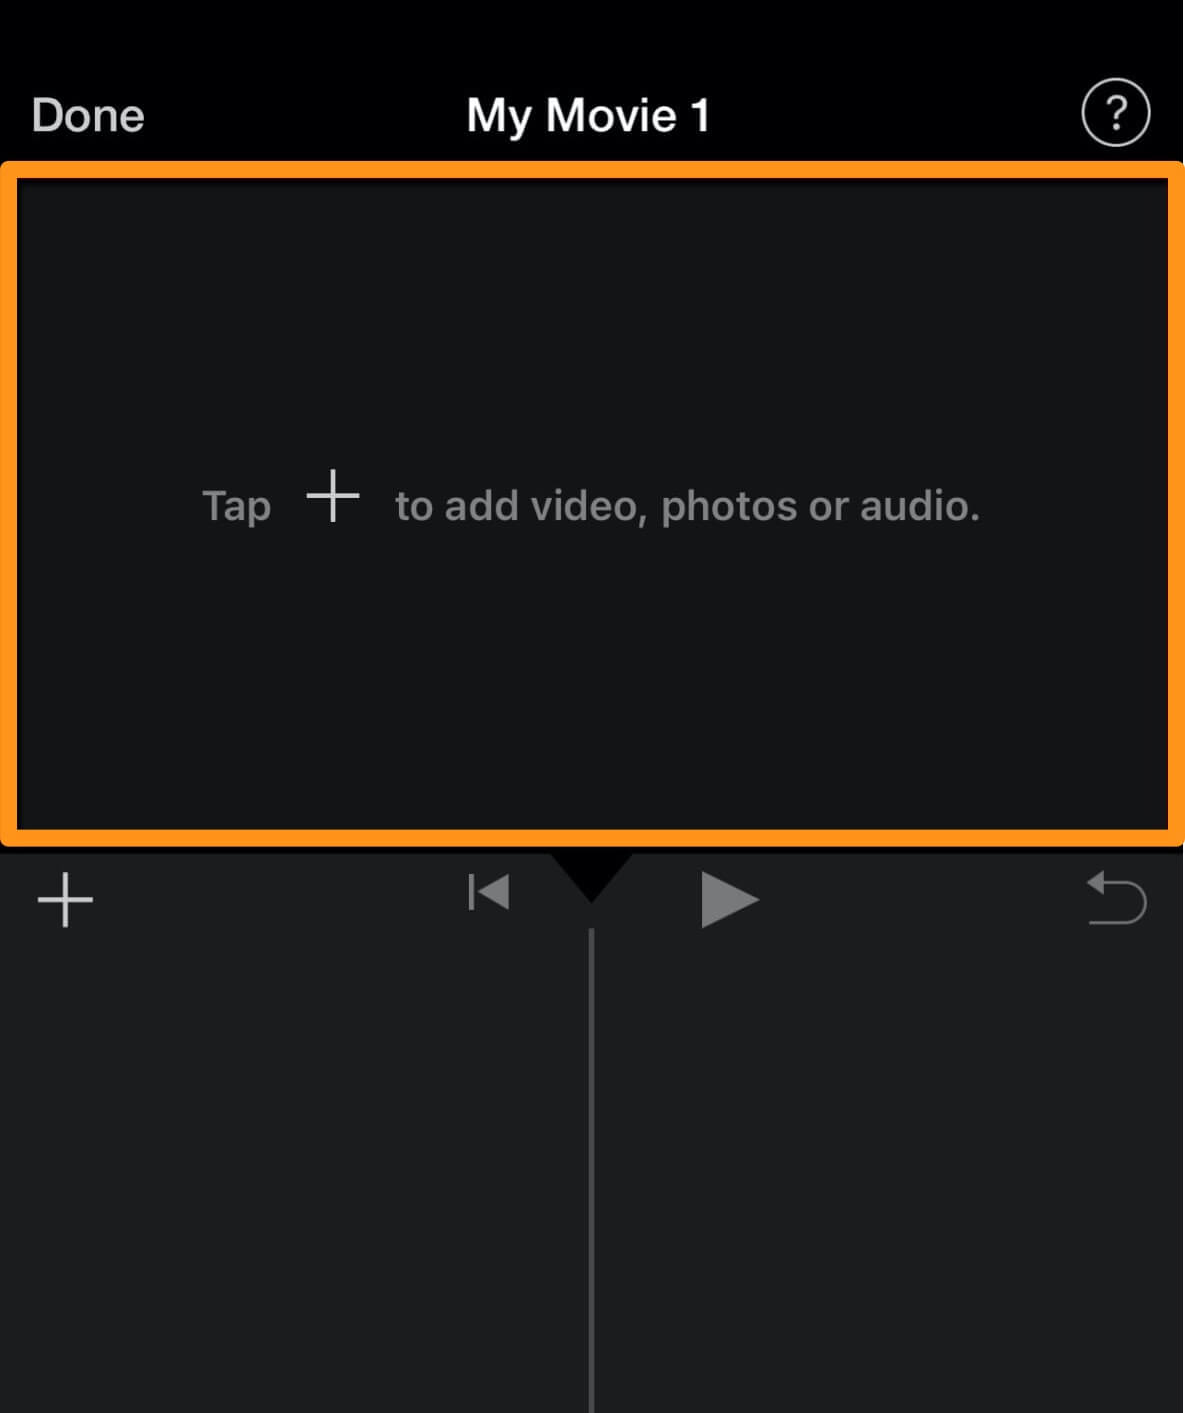 tap to add video